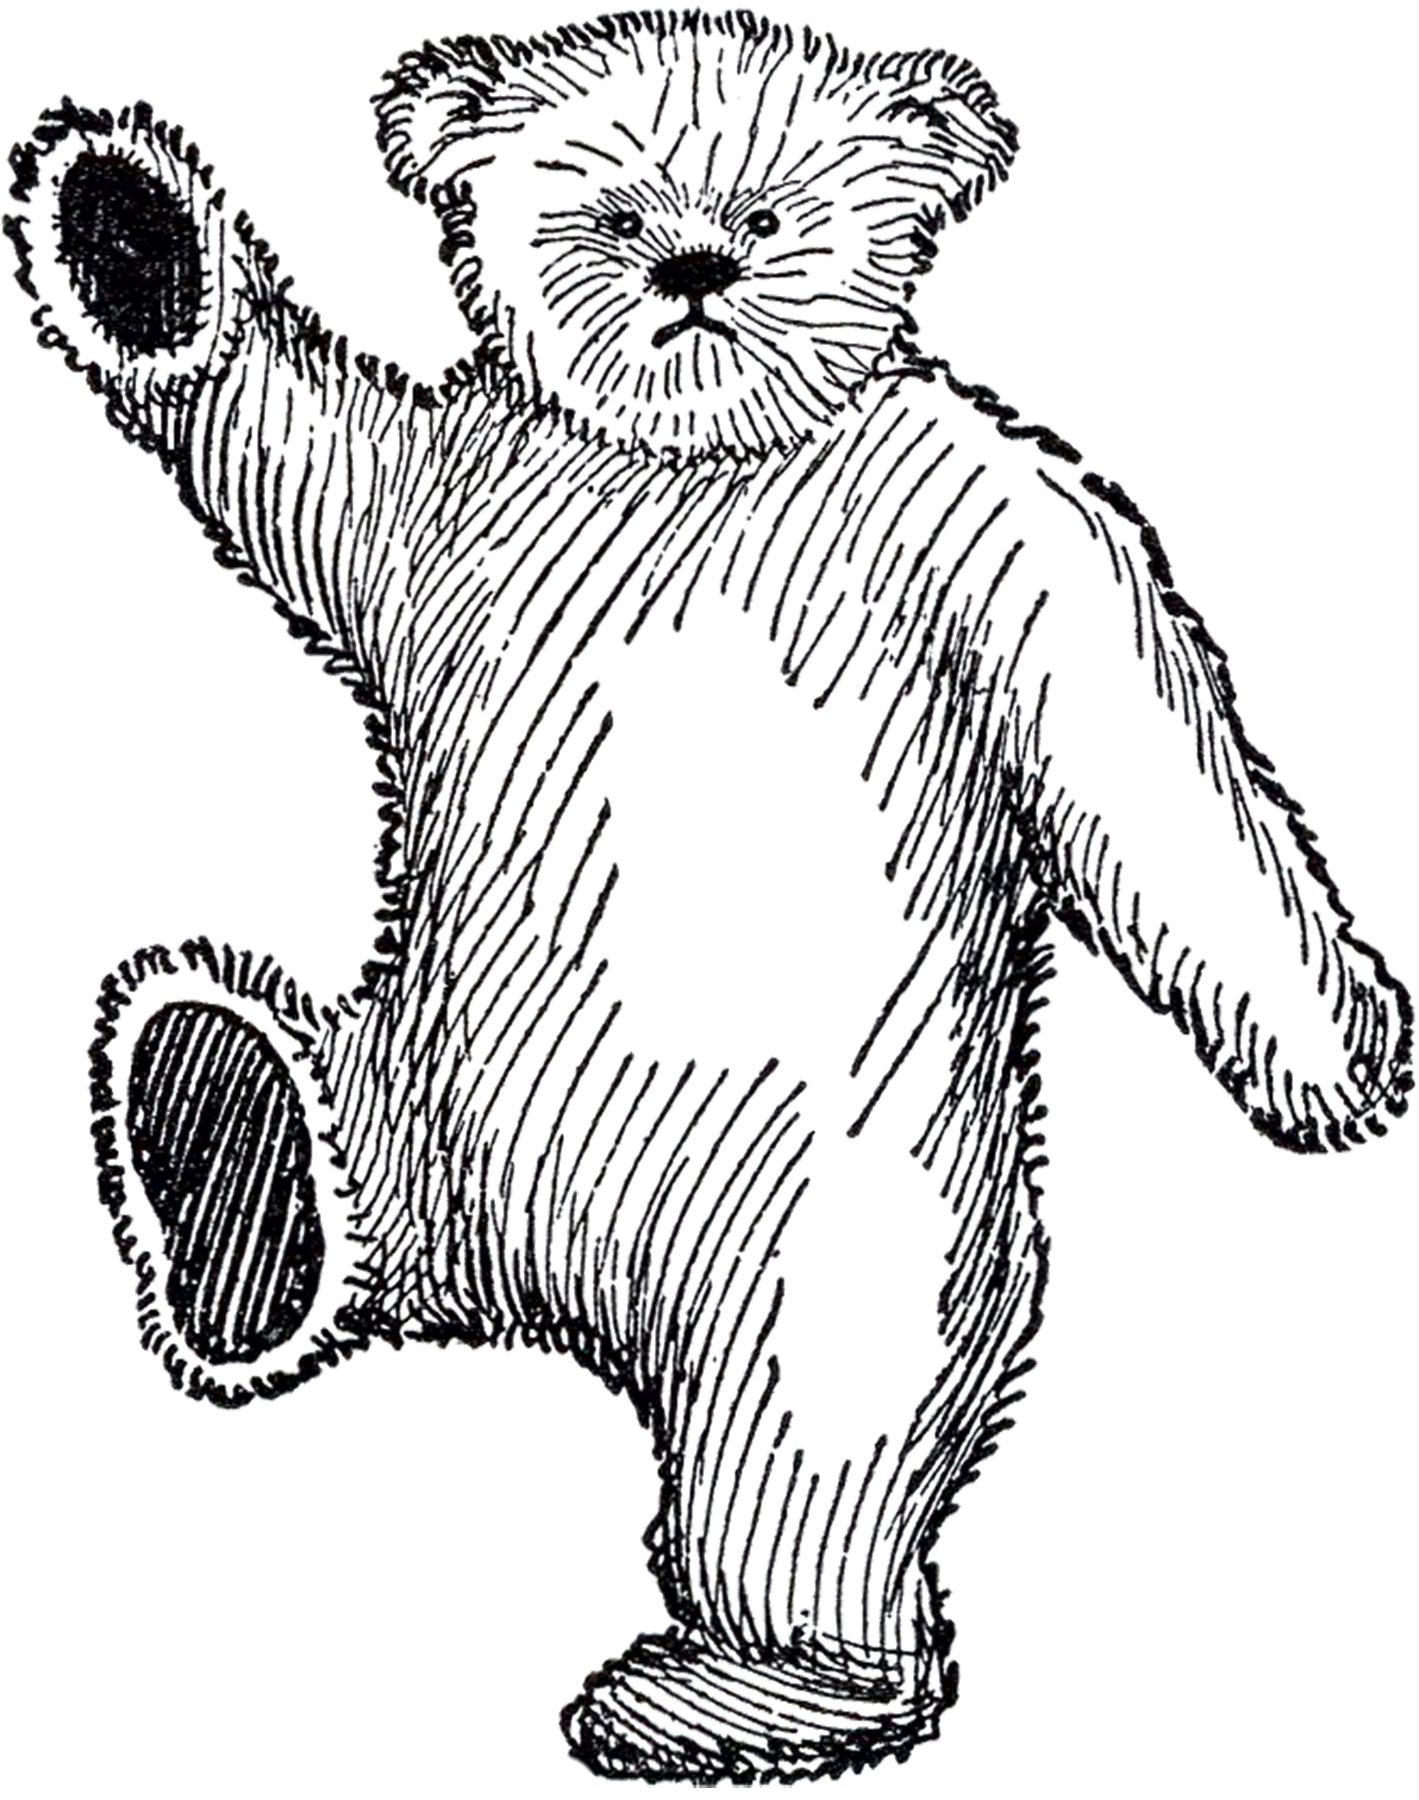 Public Domain Teddy Bear Image